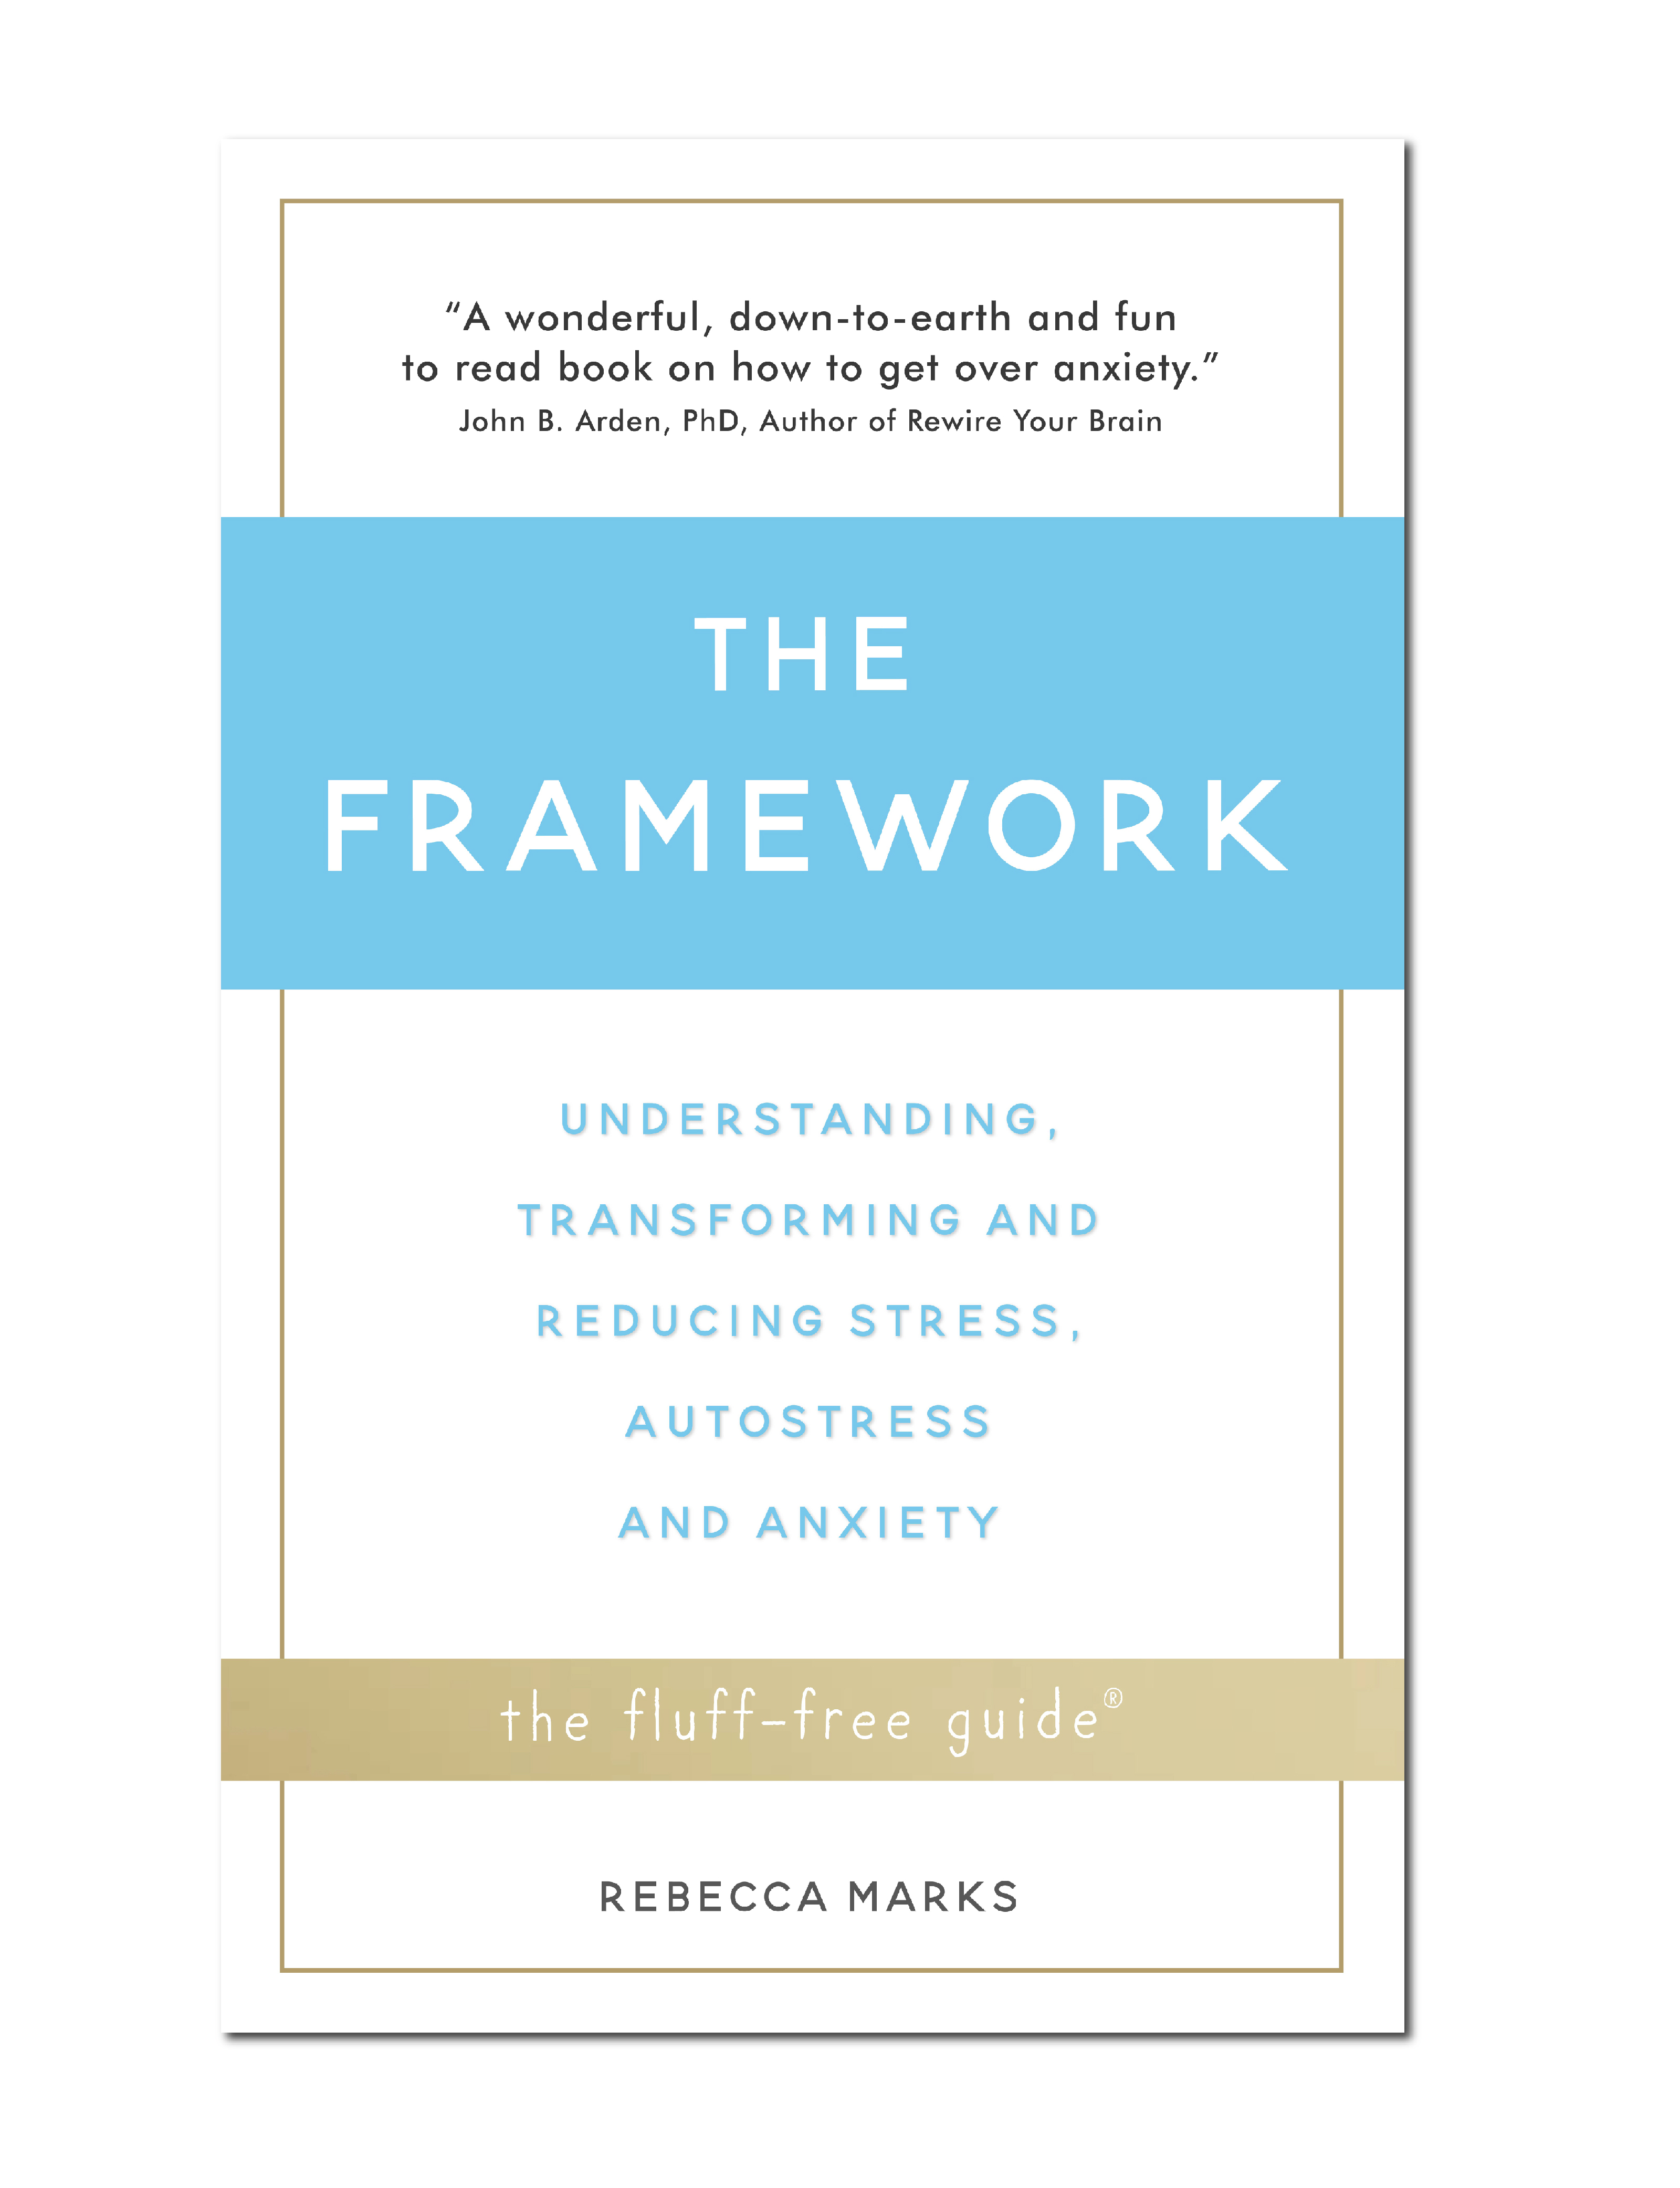 The Framework by Rebecca Marks